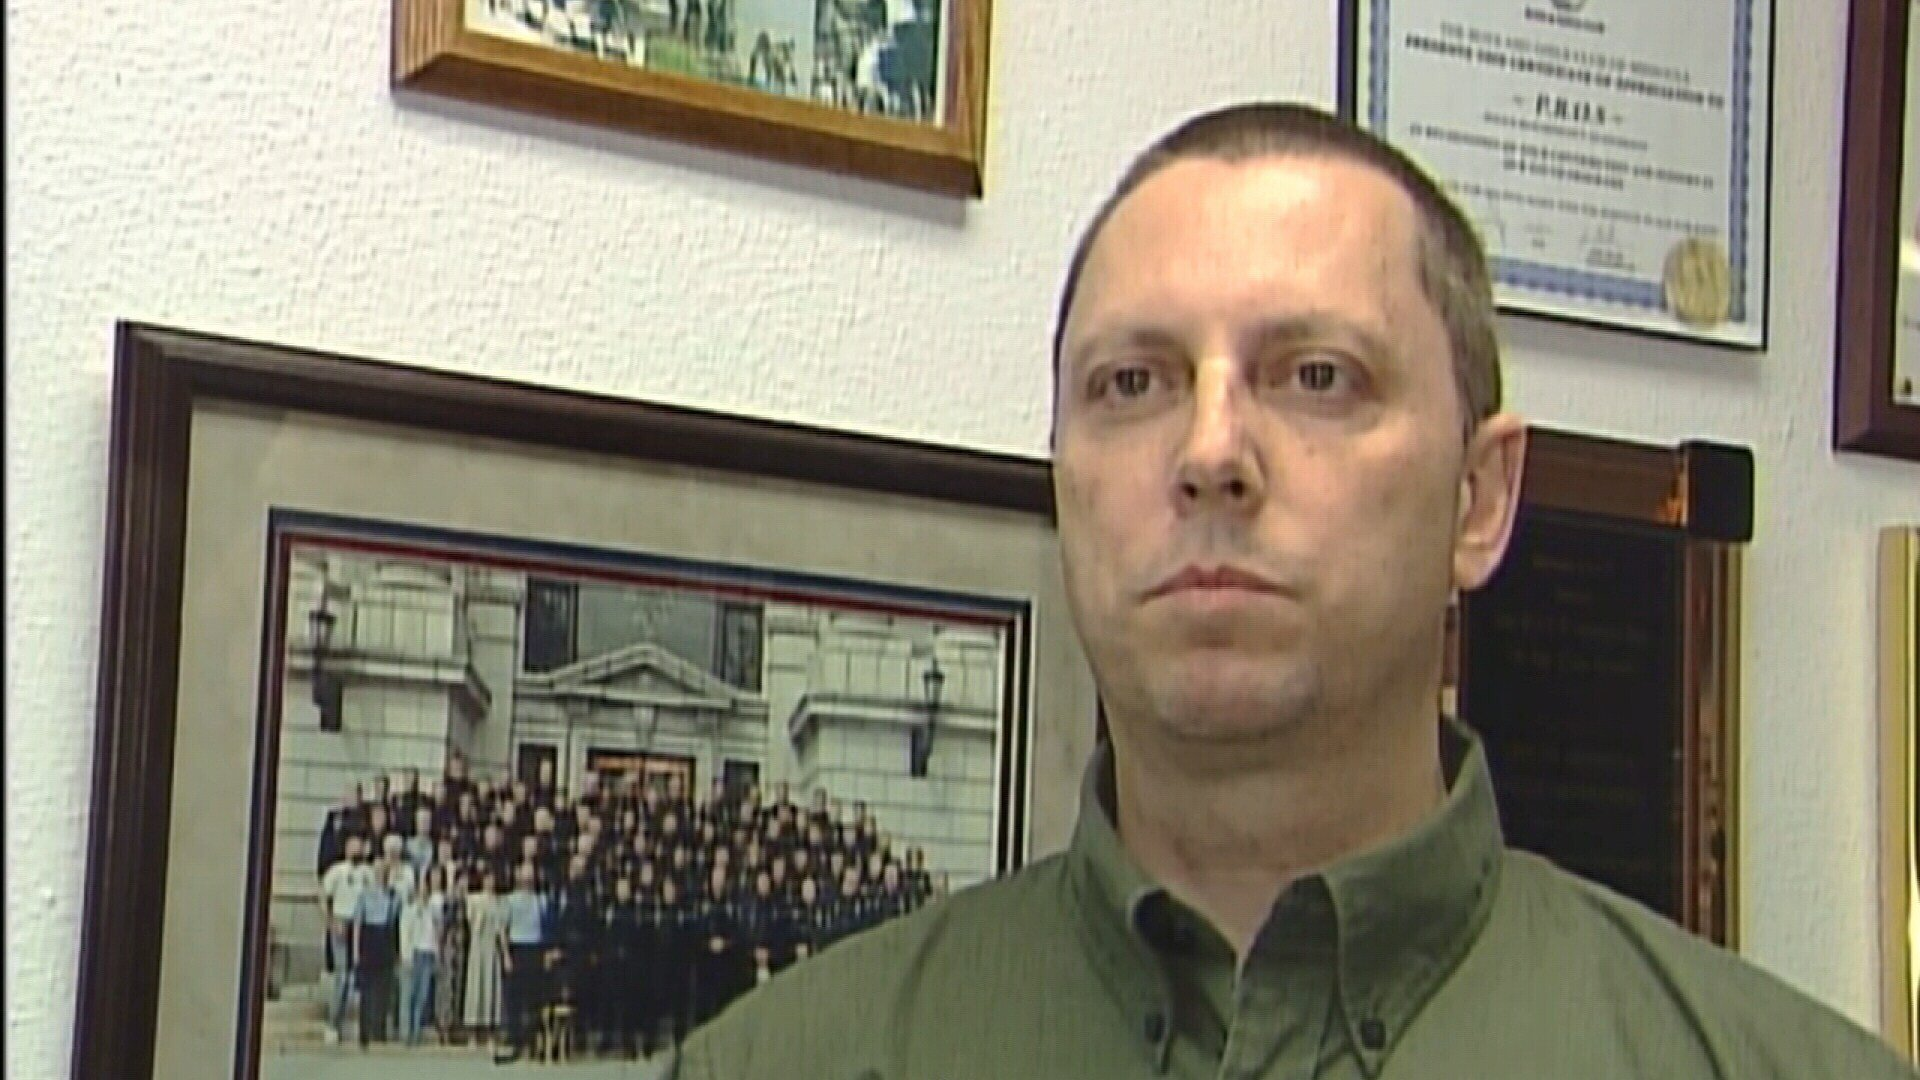 Steve Brester worked for the Missoula PD until 2012 (MTN News)